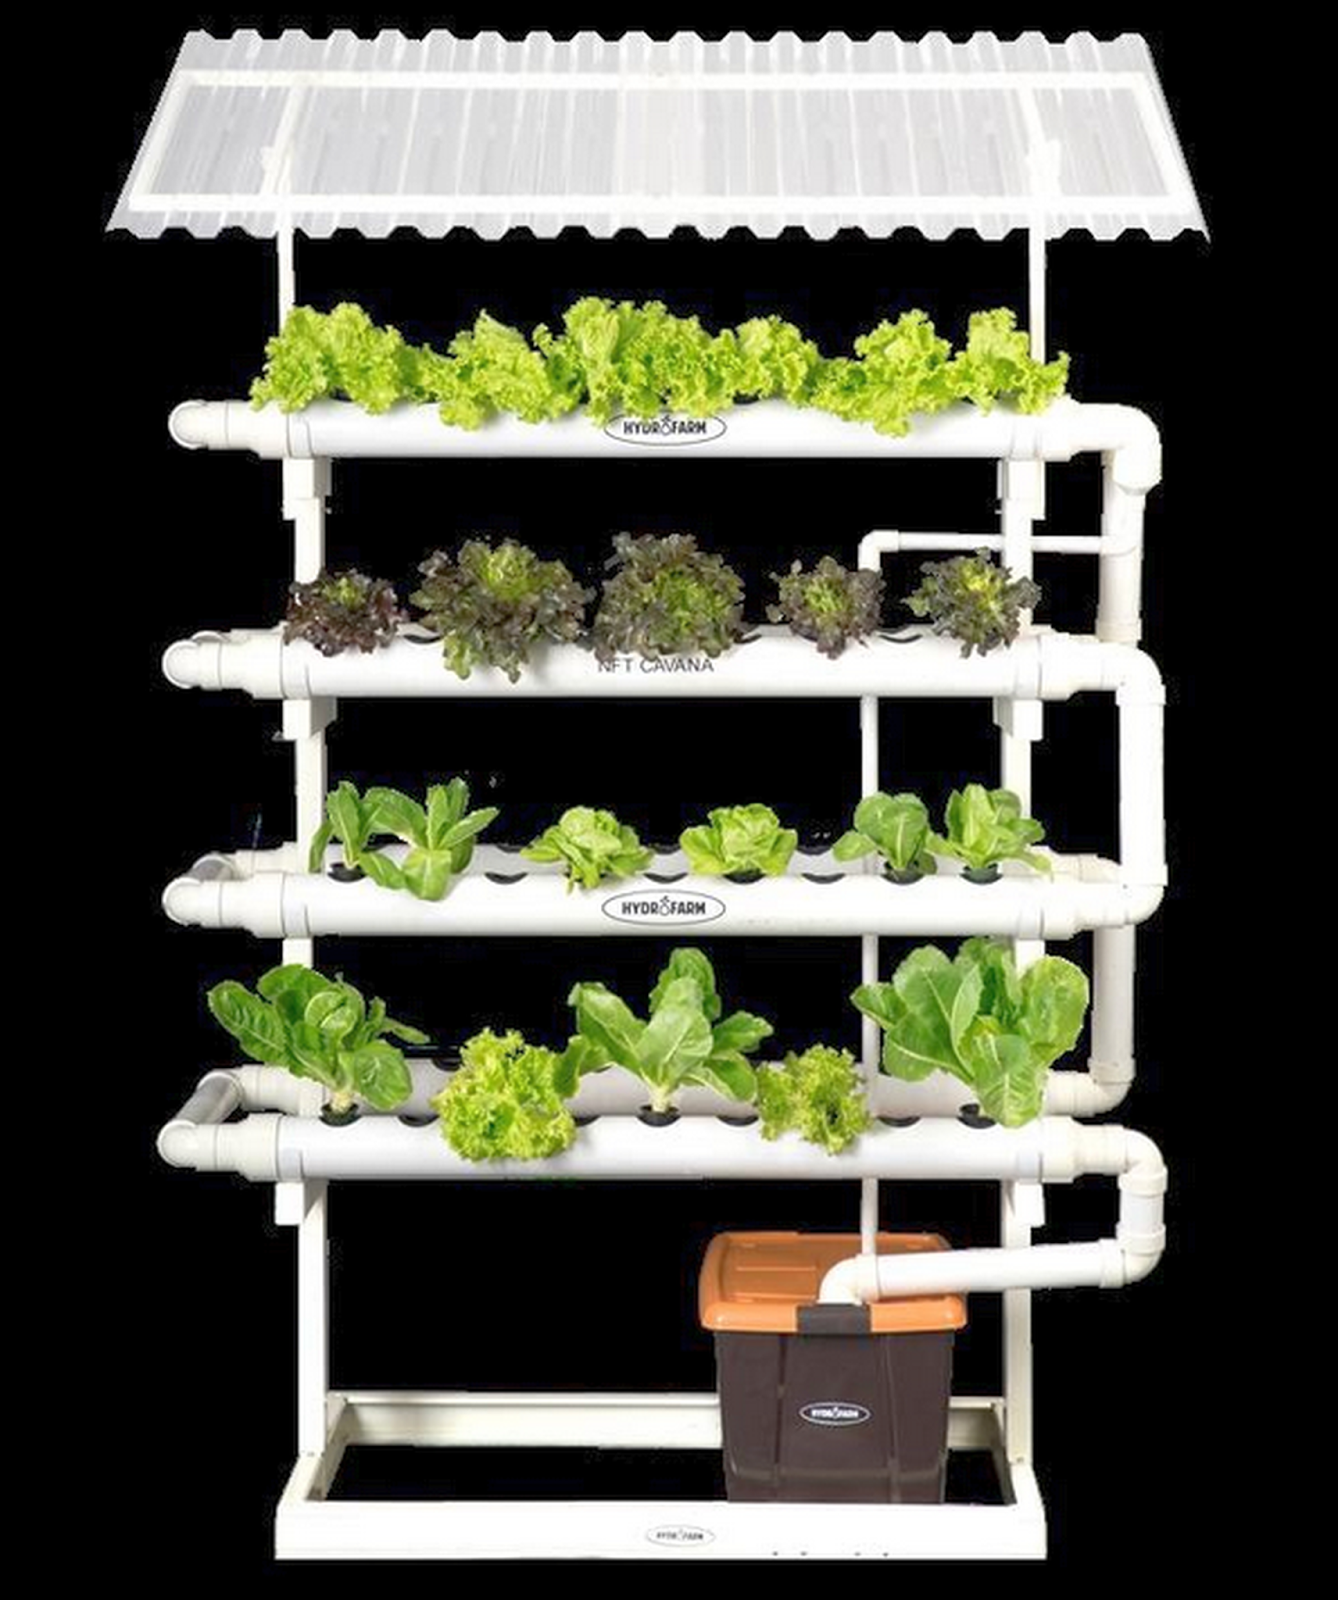 How to make a simple minimalist vertical garden for Vertical garden design